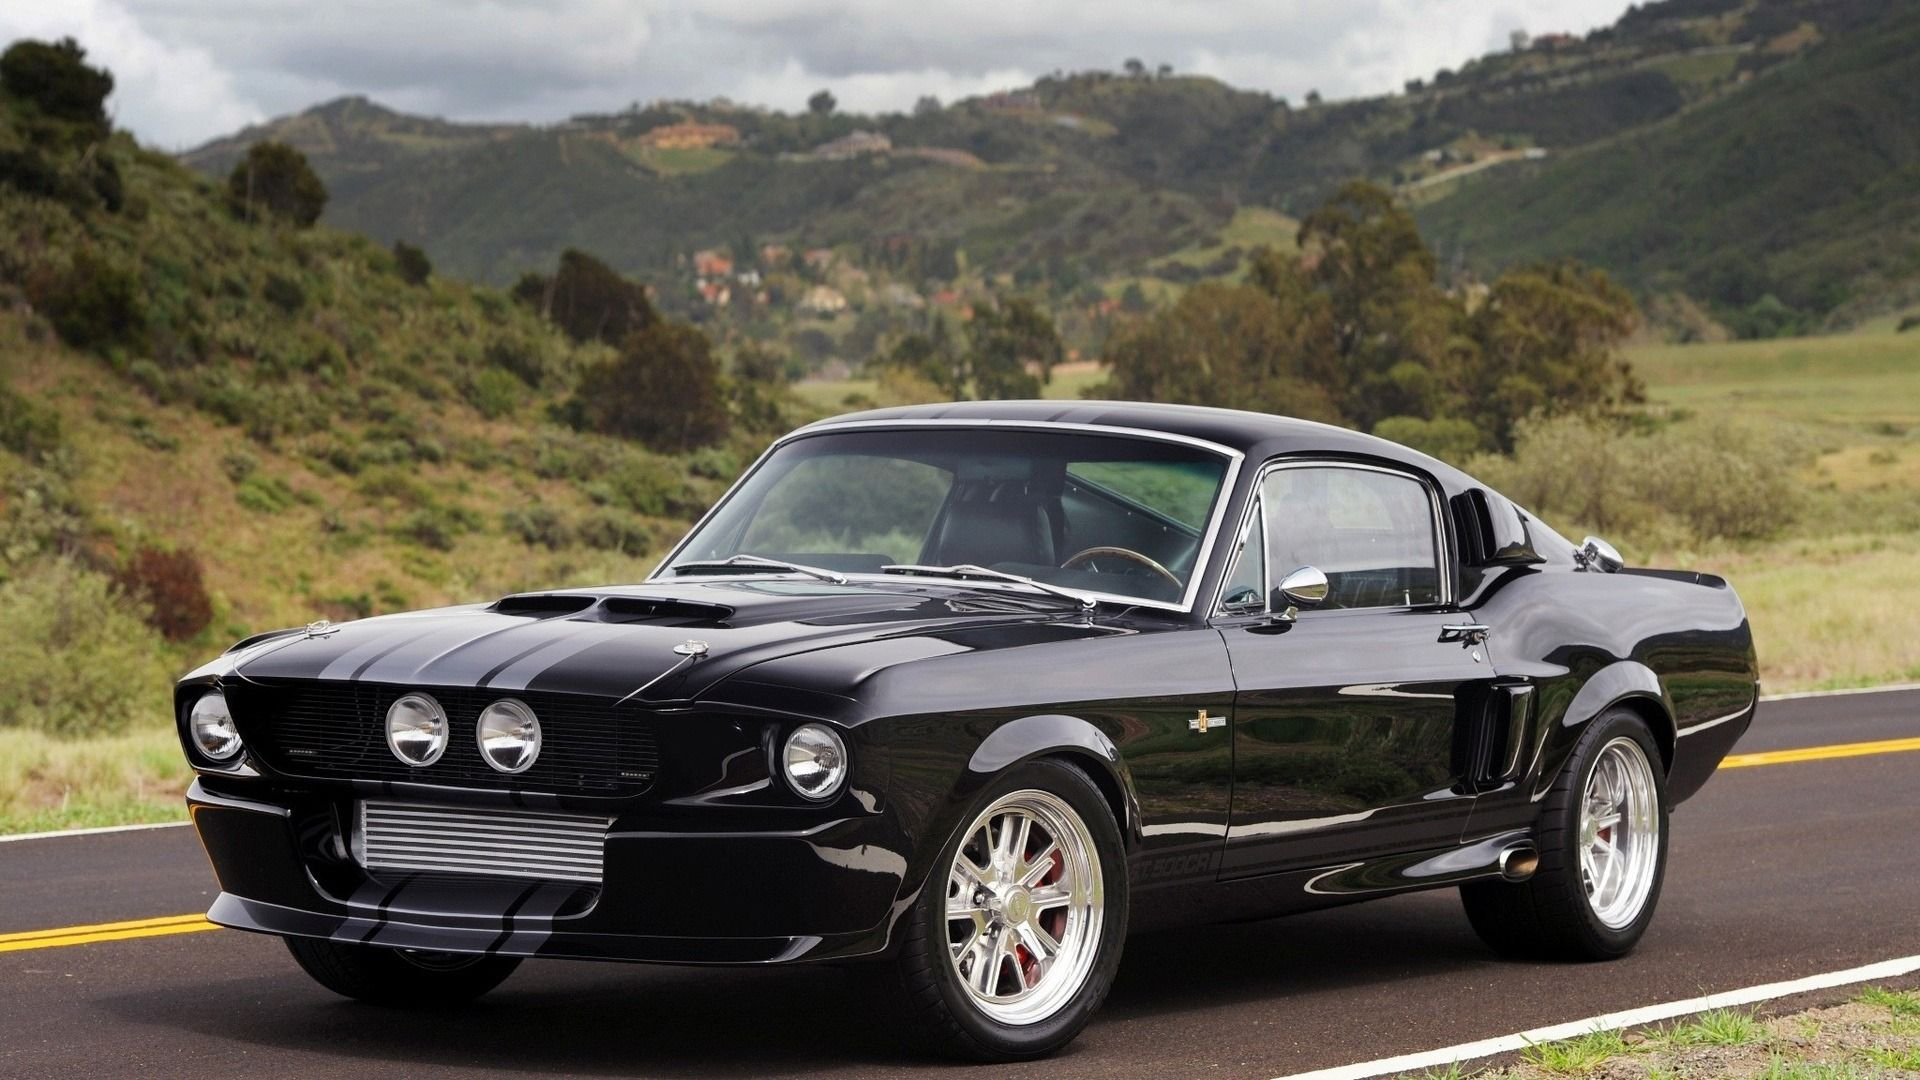 Ford mustang 1967 wallpapers car galleries